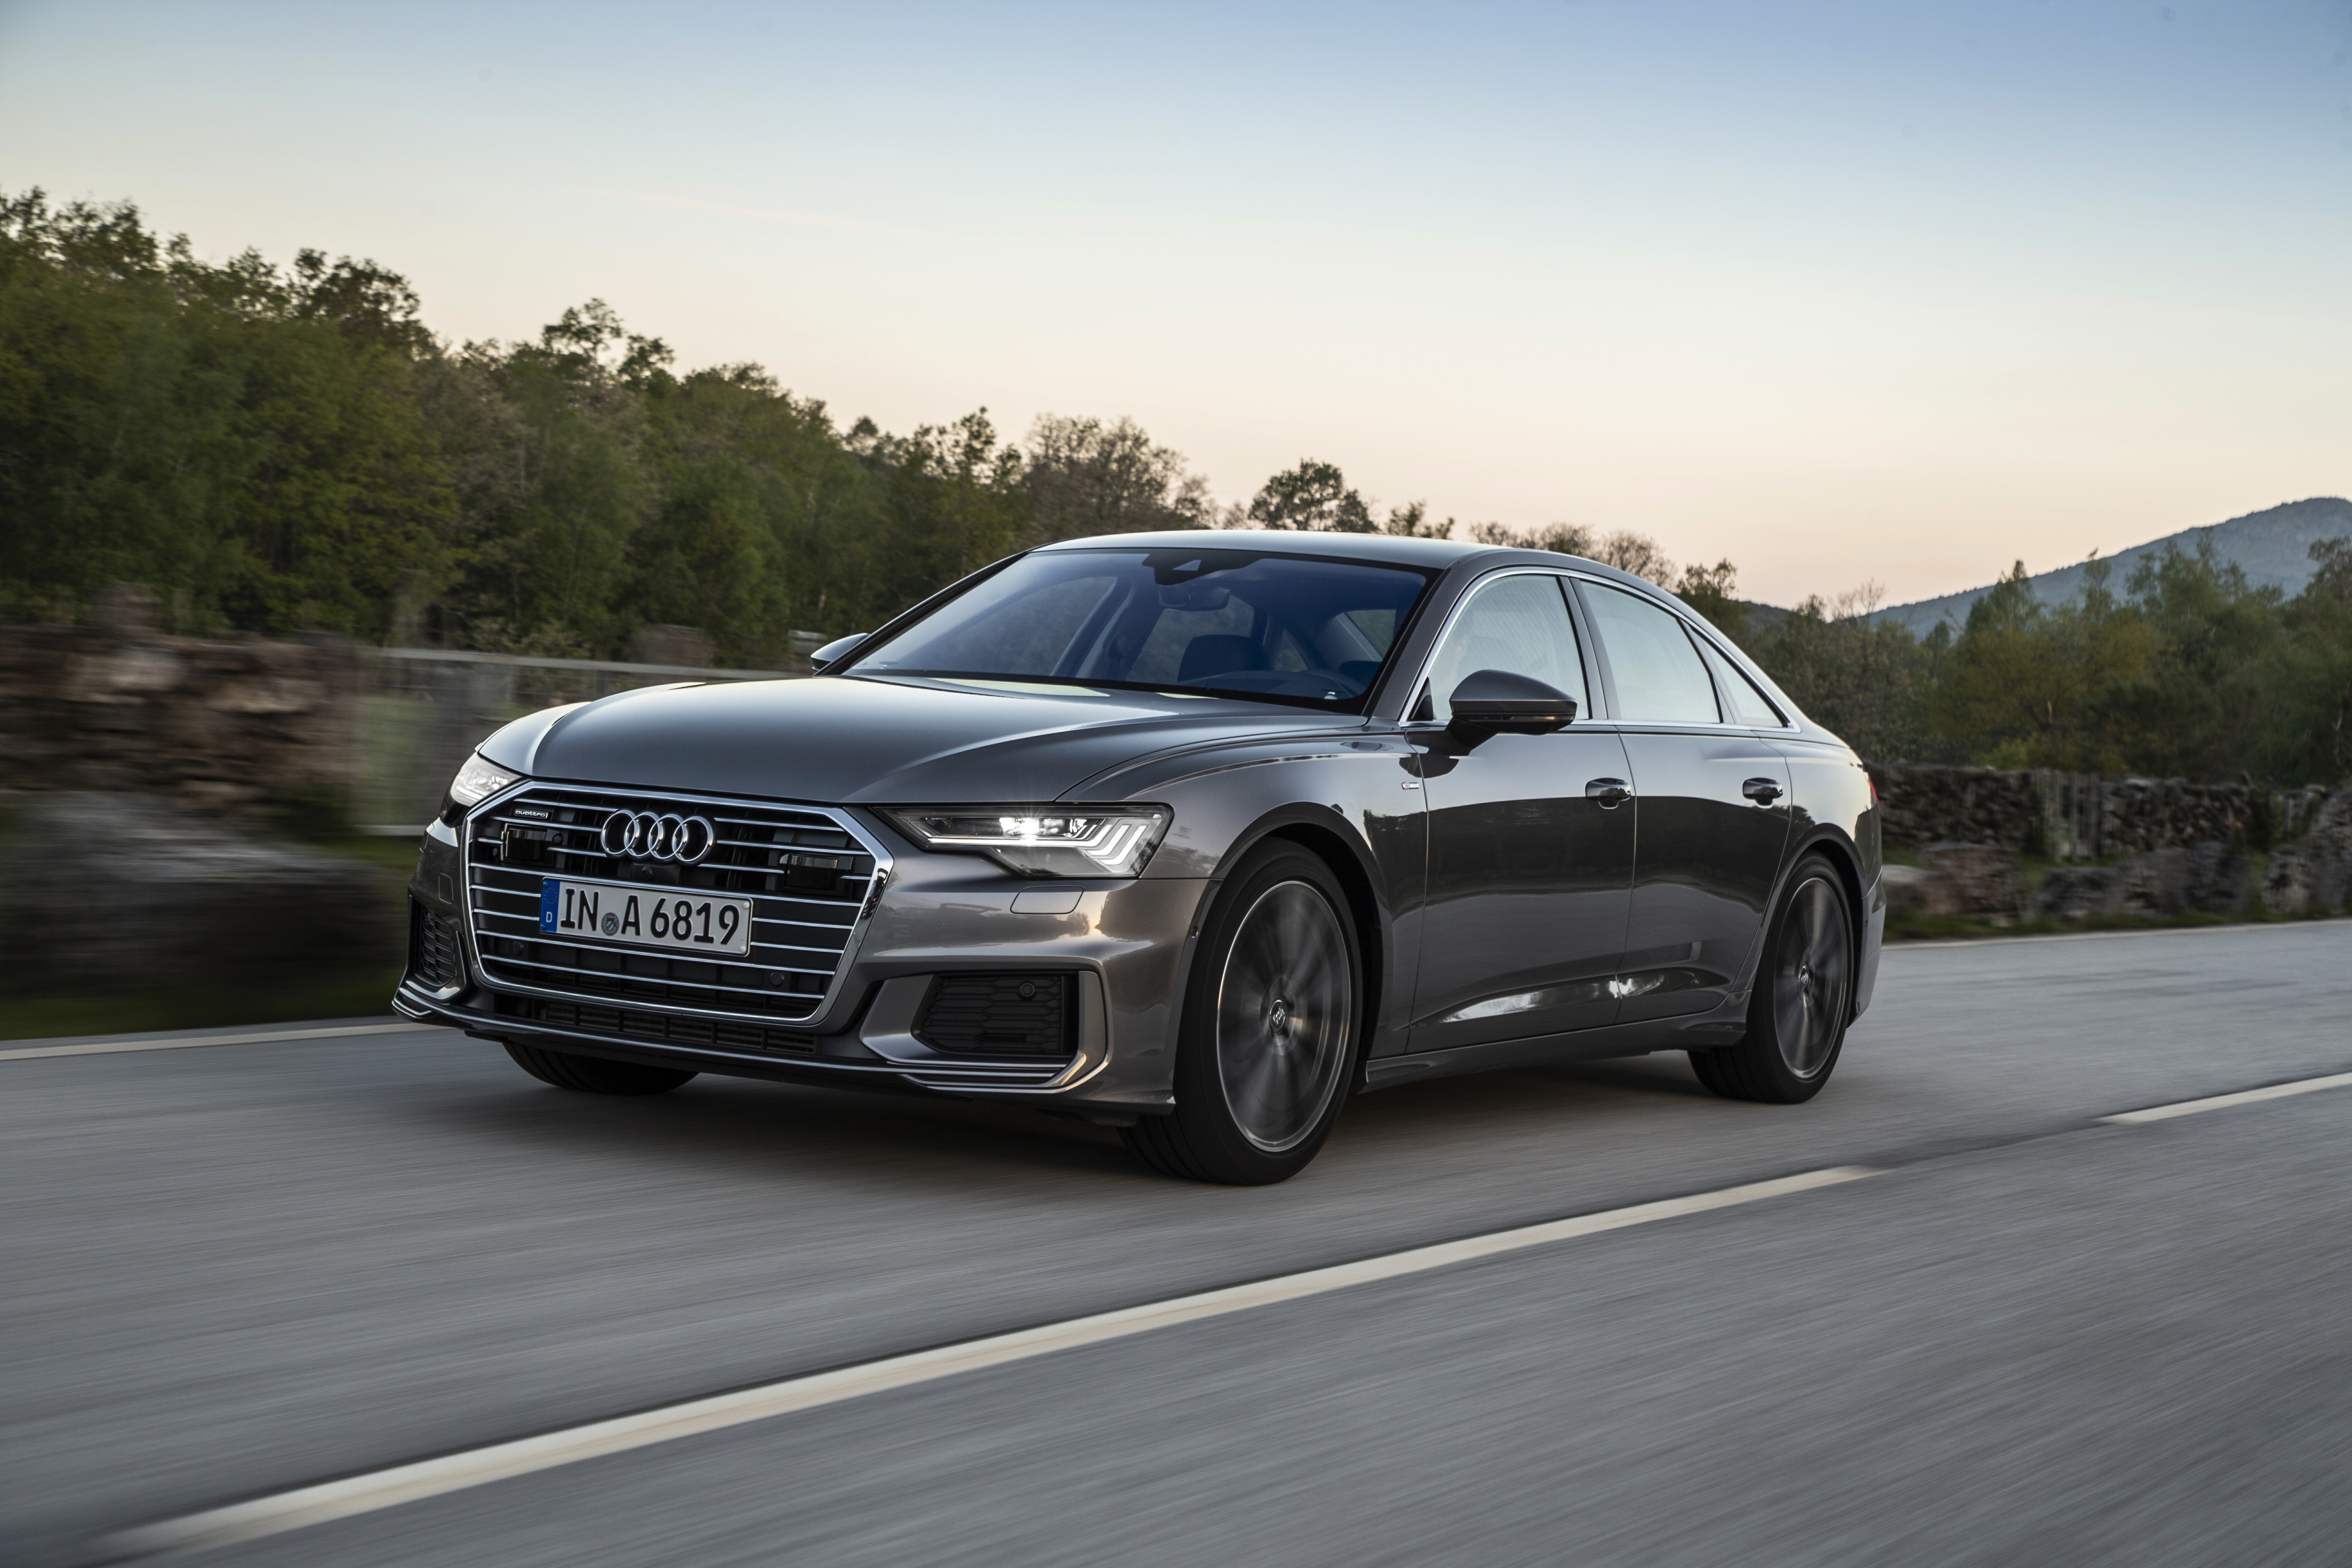 2019 Audi A6 Arrives In The Middle East Carprices Ae